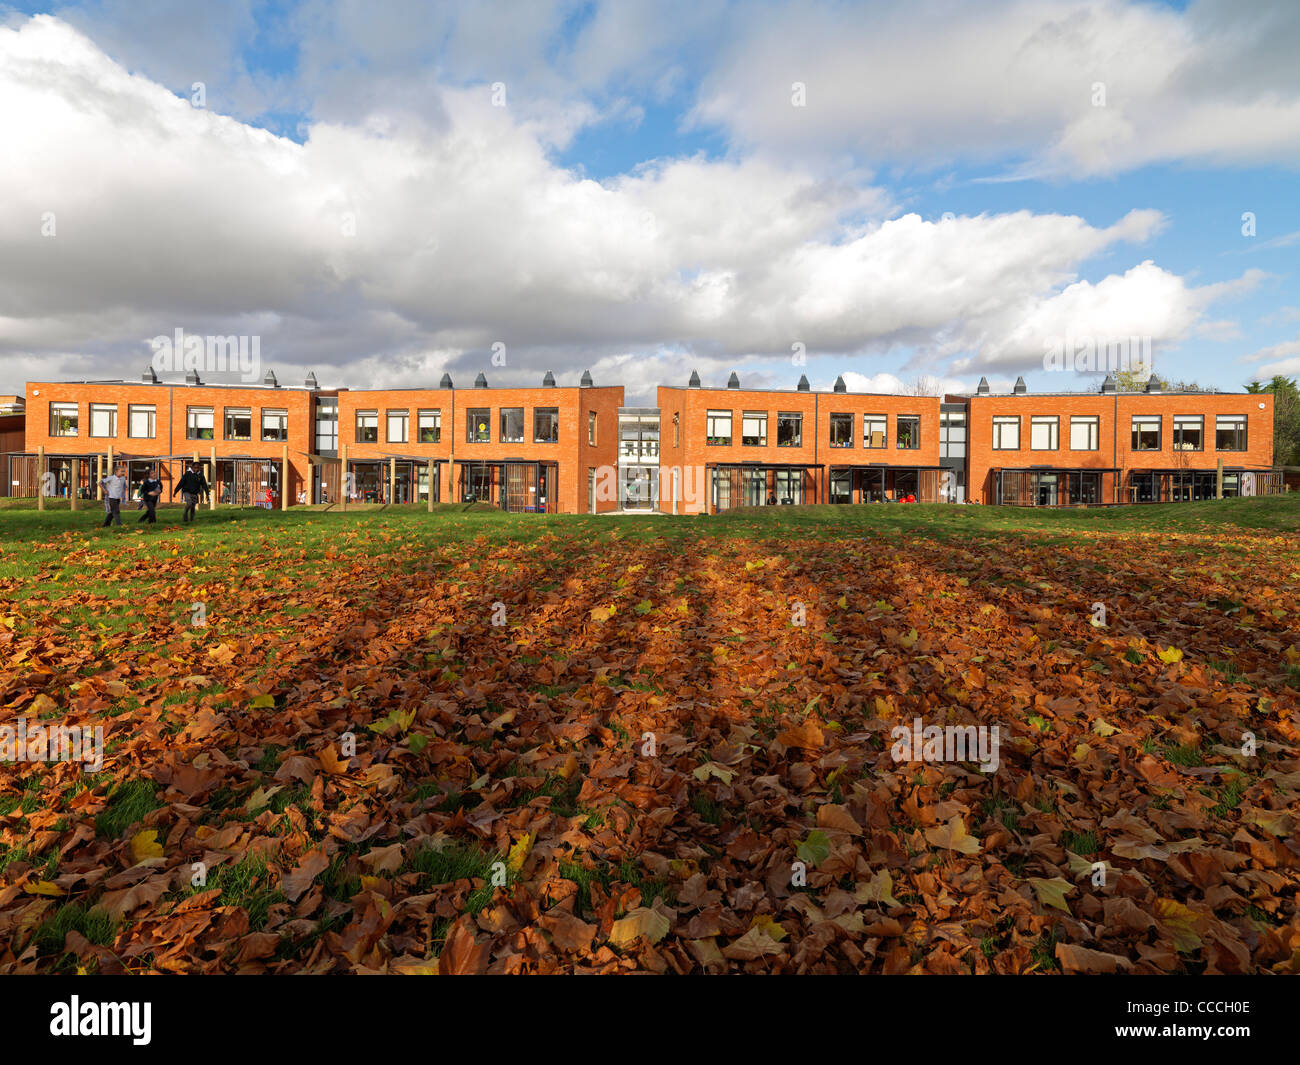 Ptea Has Designed A New School In A Residential Conservation Area That Improves Teaching Space, Creates New Facilities - Stock Image